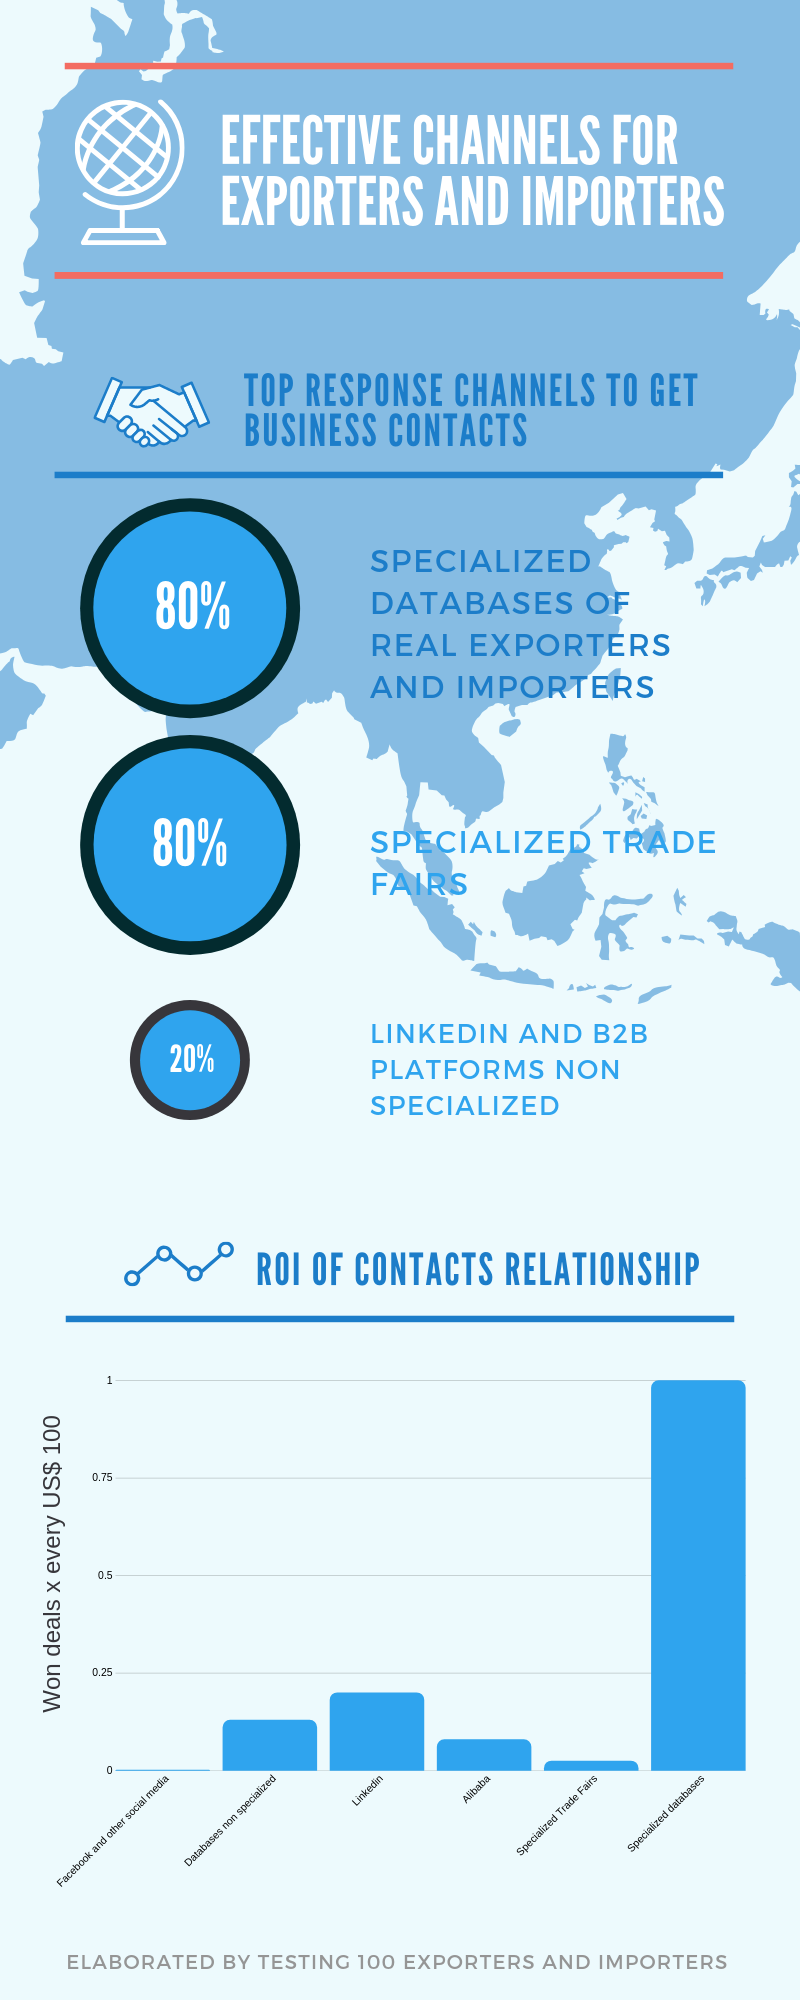 Effective channels for exporters and importers.png